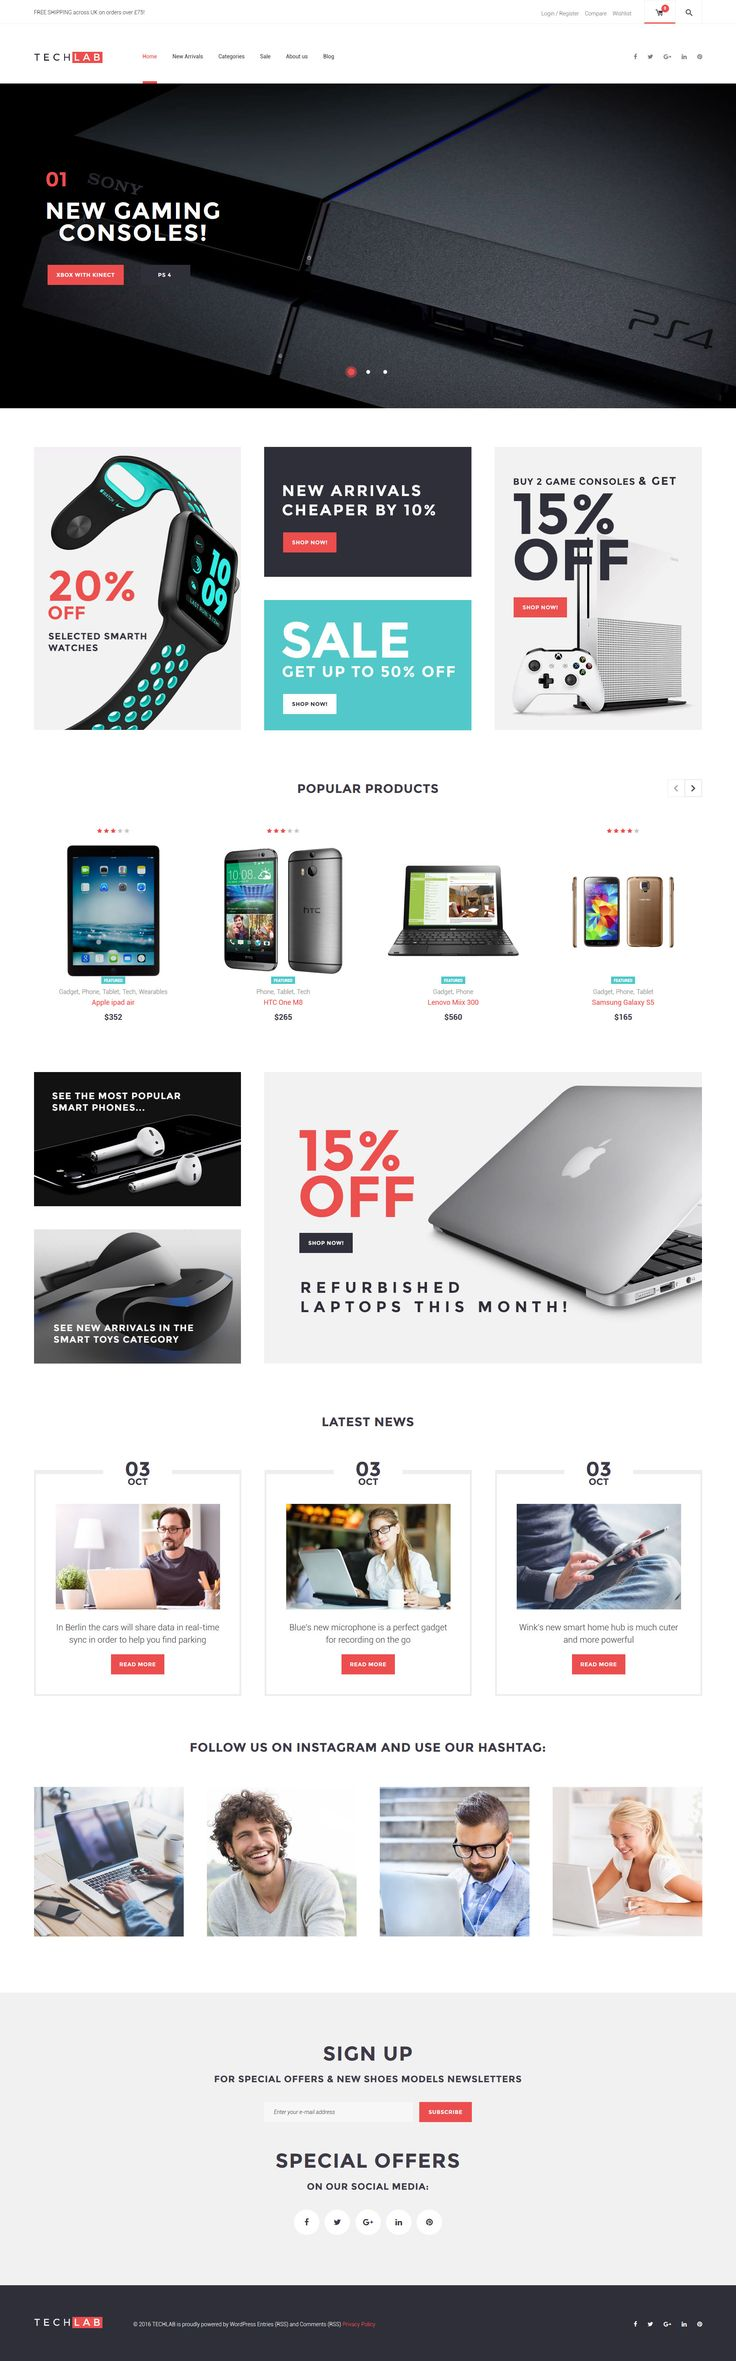 TechLab - Innovative Electronics Store WooCommerce Theme - http://www.templatemonster.com/woocommerce-themes/61303.html